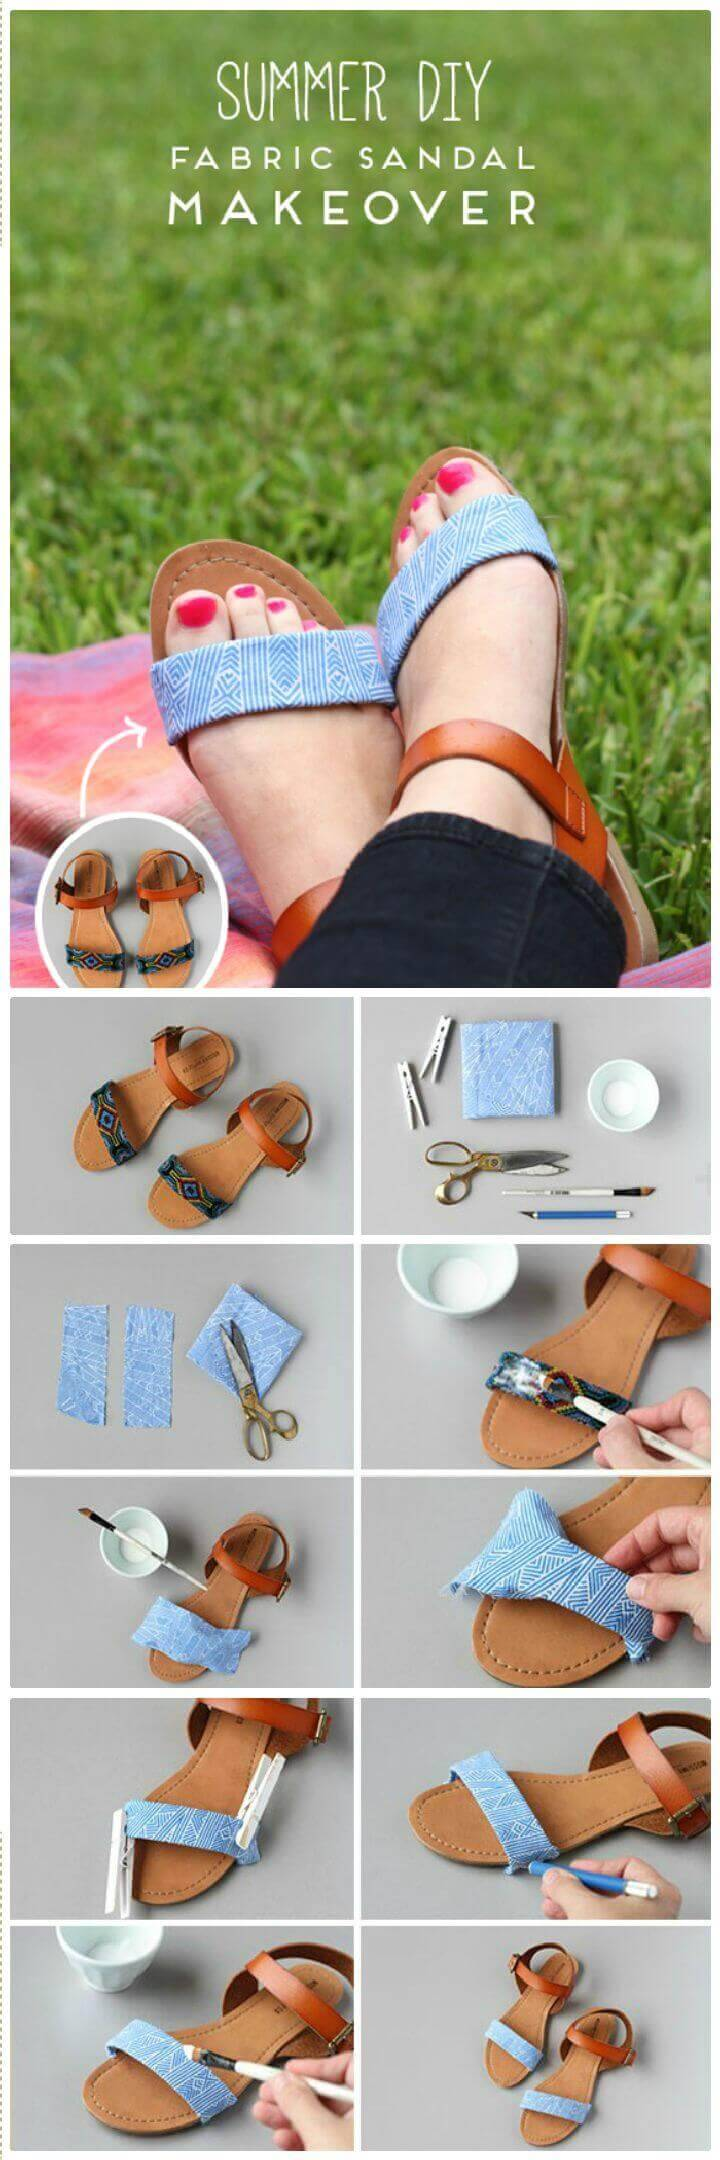 DIY Fabric Sandal Makeover